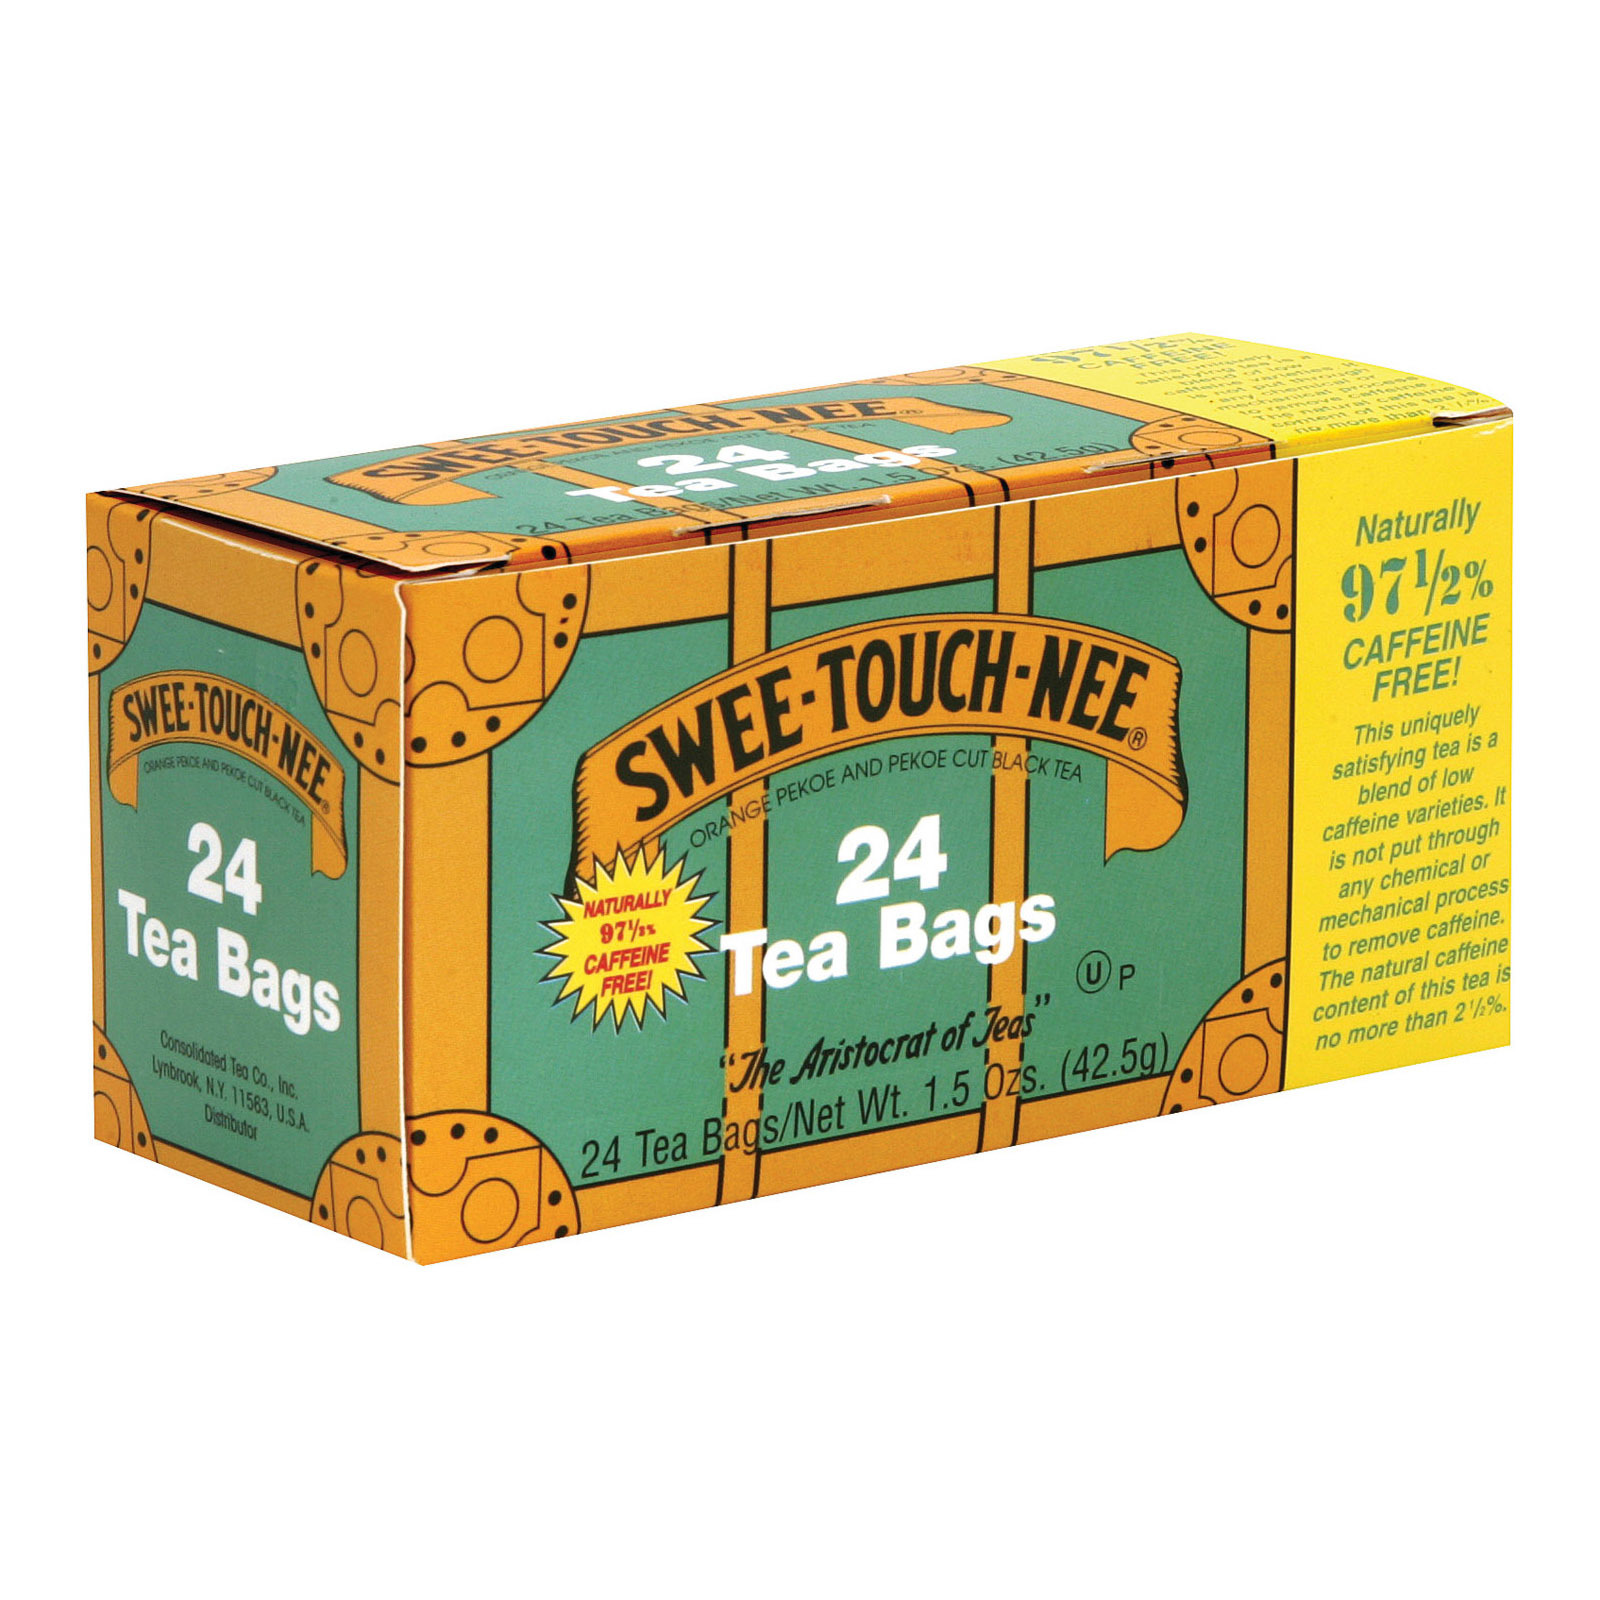 Sweet Touch Nee Black Tea - Decaffeinated - Case of 12 - 24 Bags